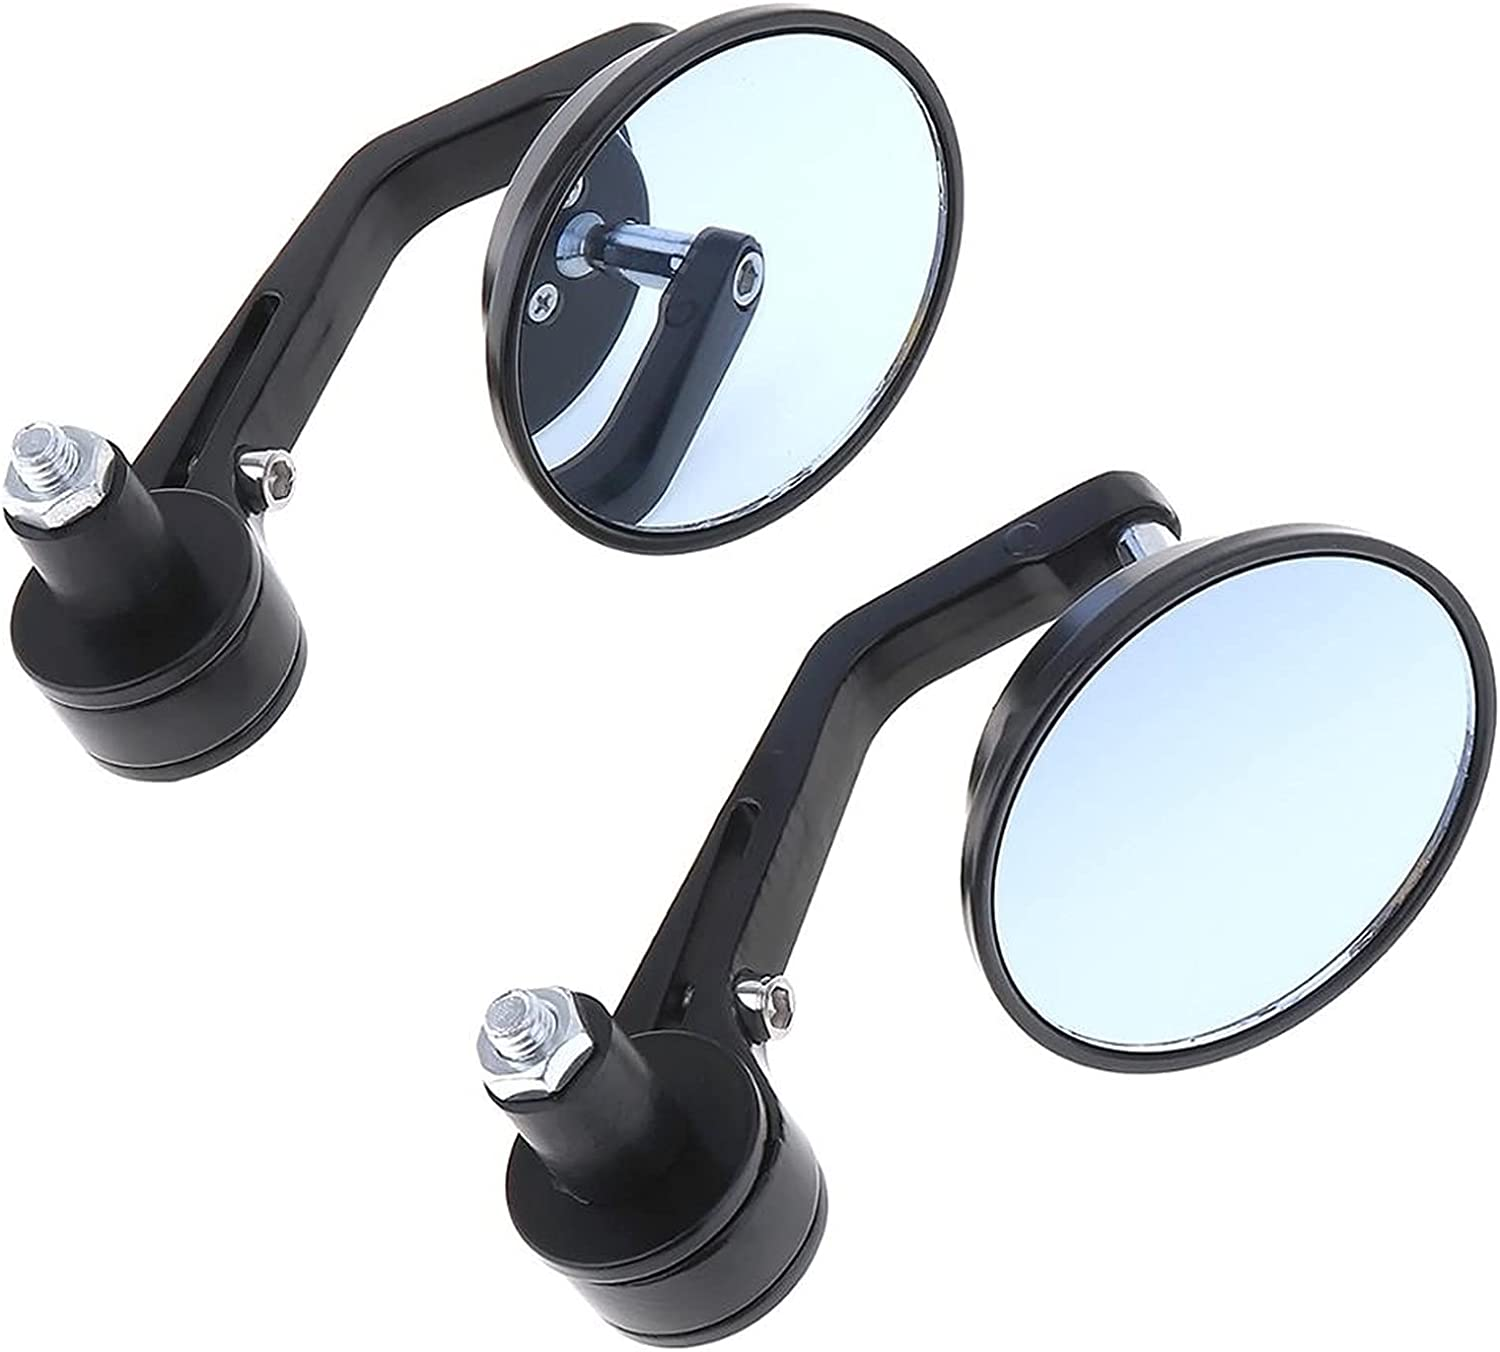 Discount mail order HSSM Rearview Mirror Universal Directly managed store 7 8